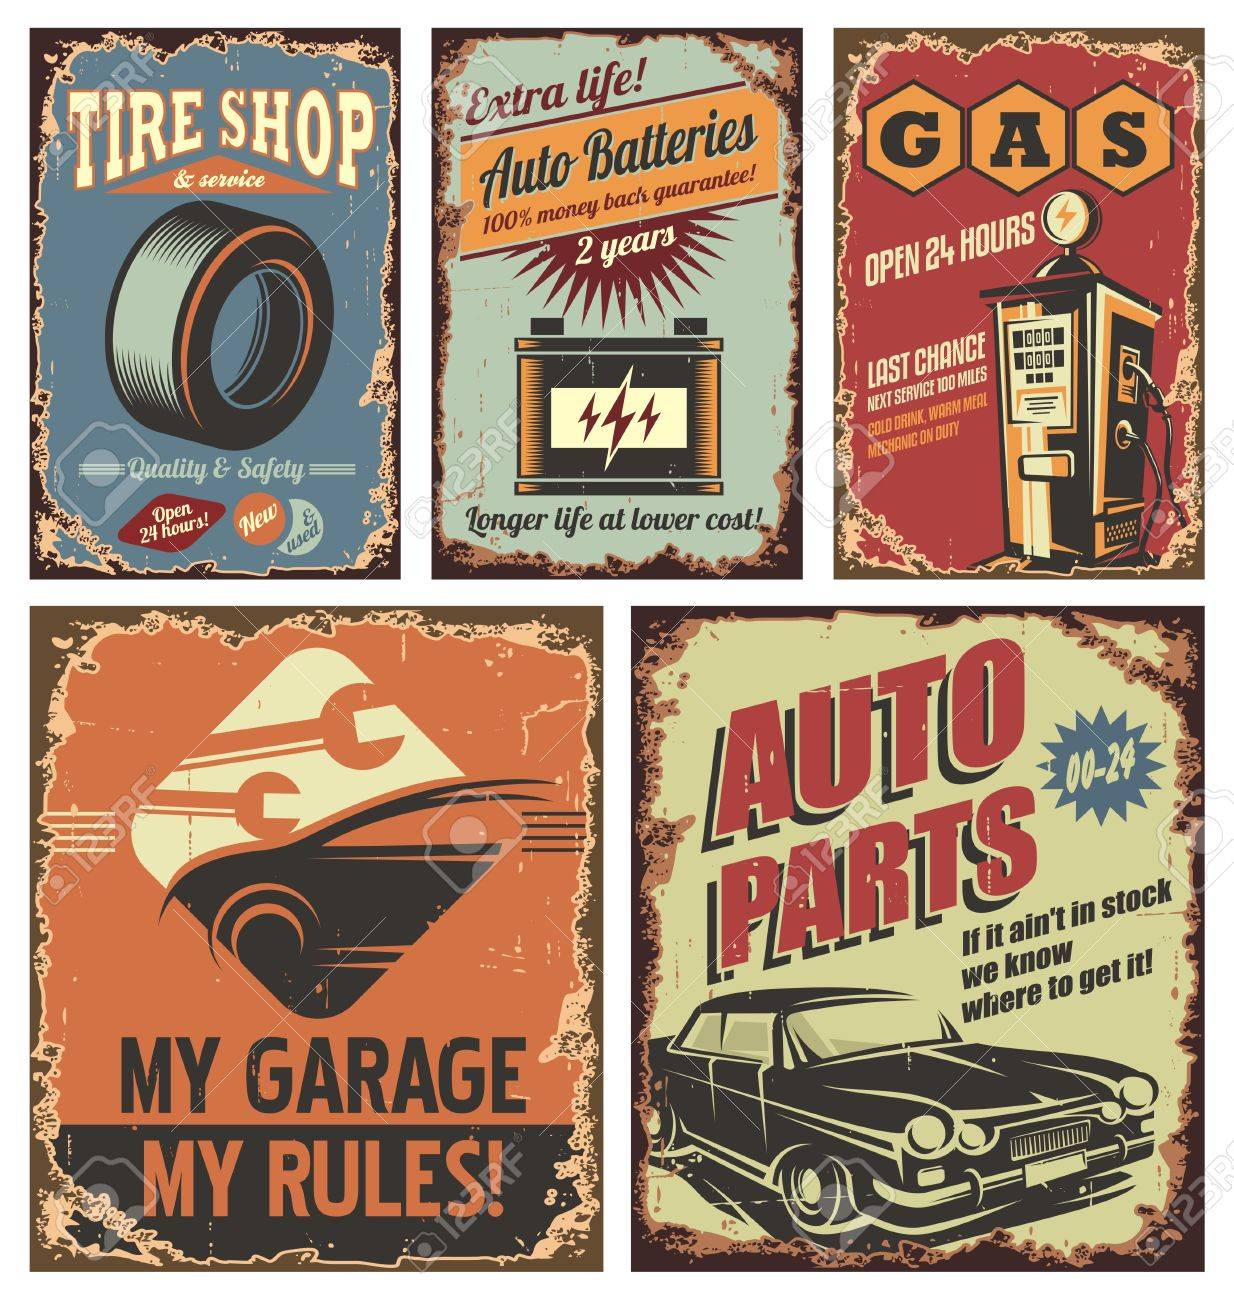 Vintage car service tin signs and posters on old rusty background - 50251420